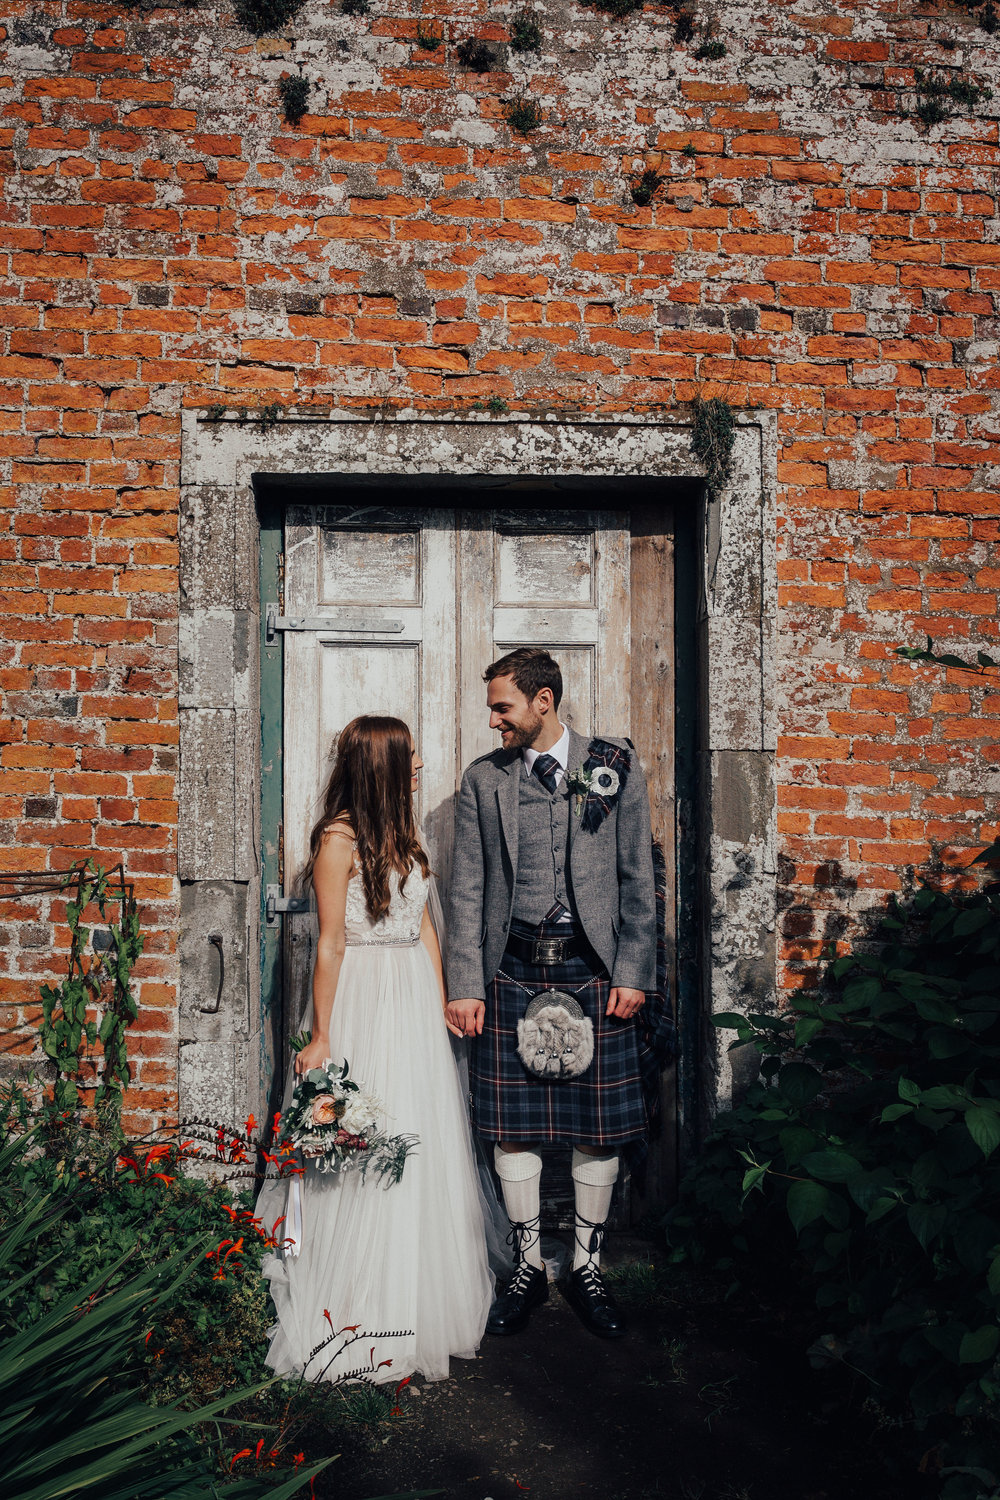 BYRE_AT_INCHYRA_WEDDING_PHOTOGRAPHER_PJ_PHILLIPS_PHOTOGRAPHY_KAYLEIGH_ANDREW_111.jpg